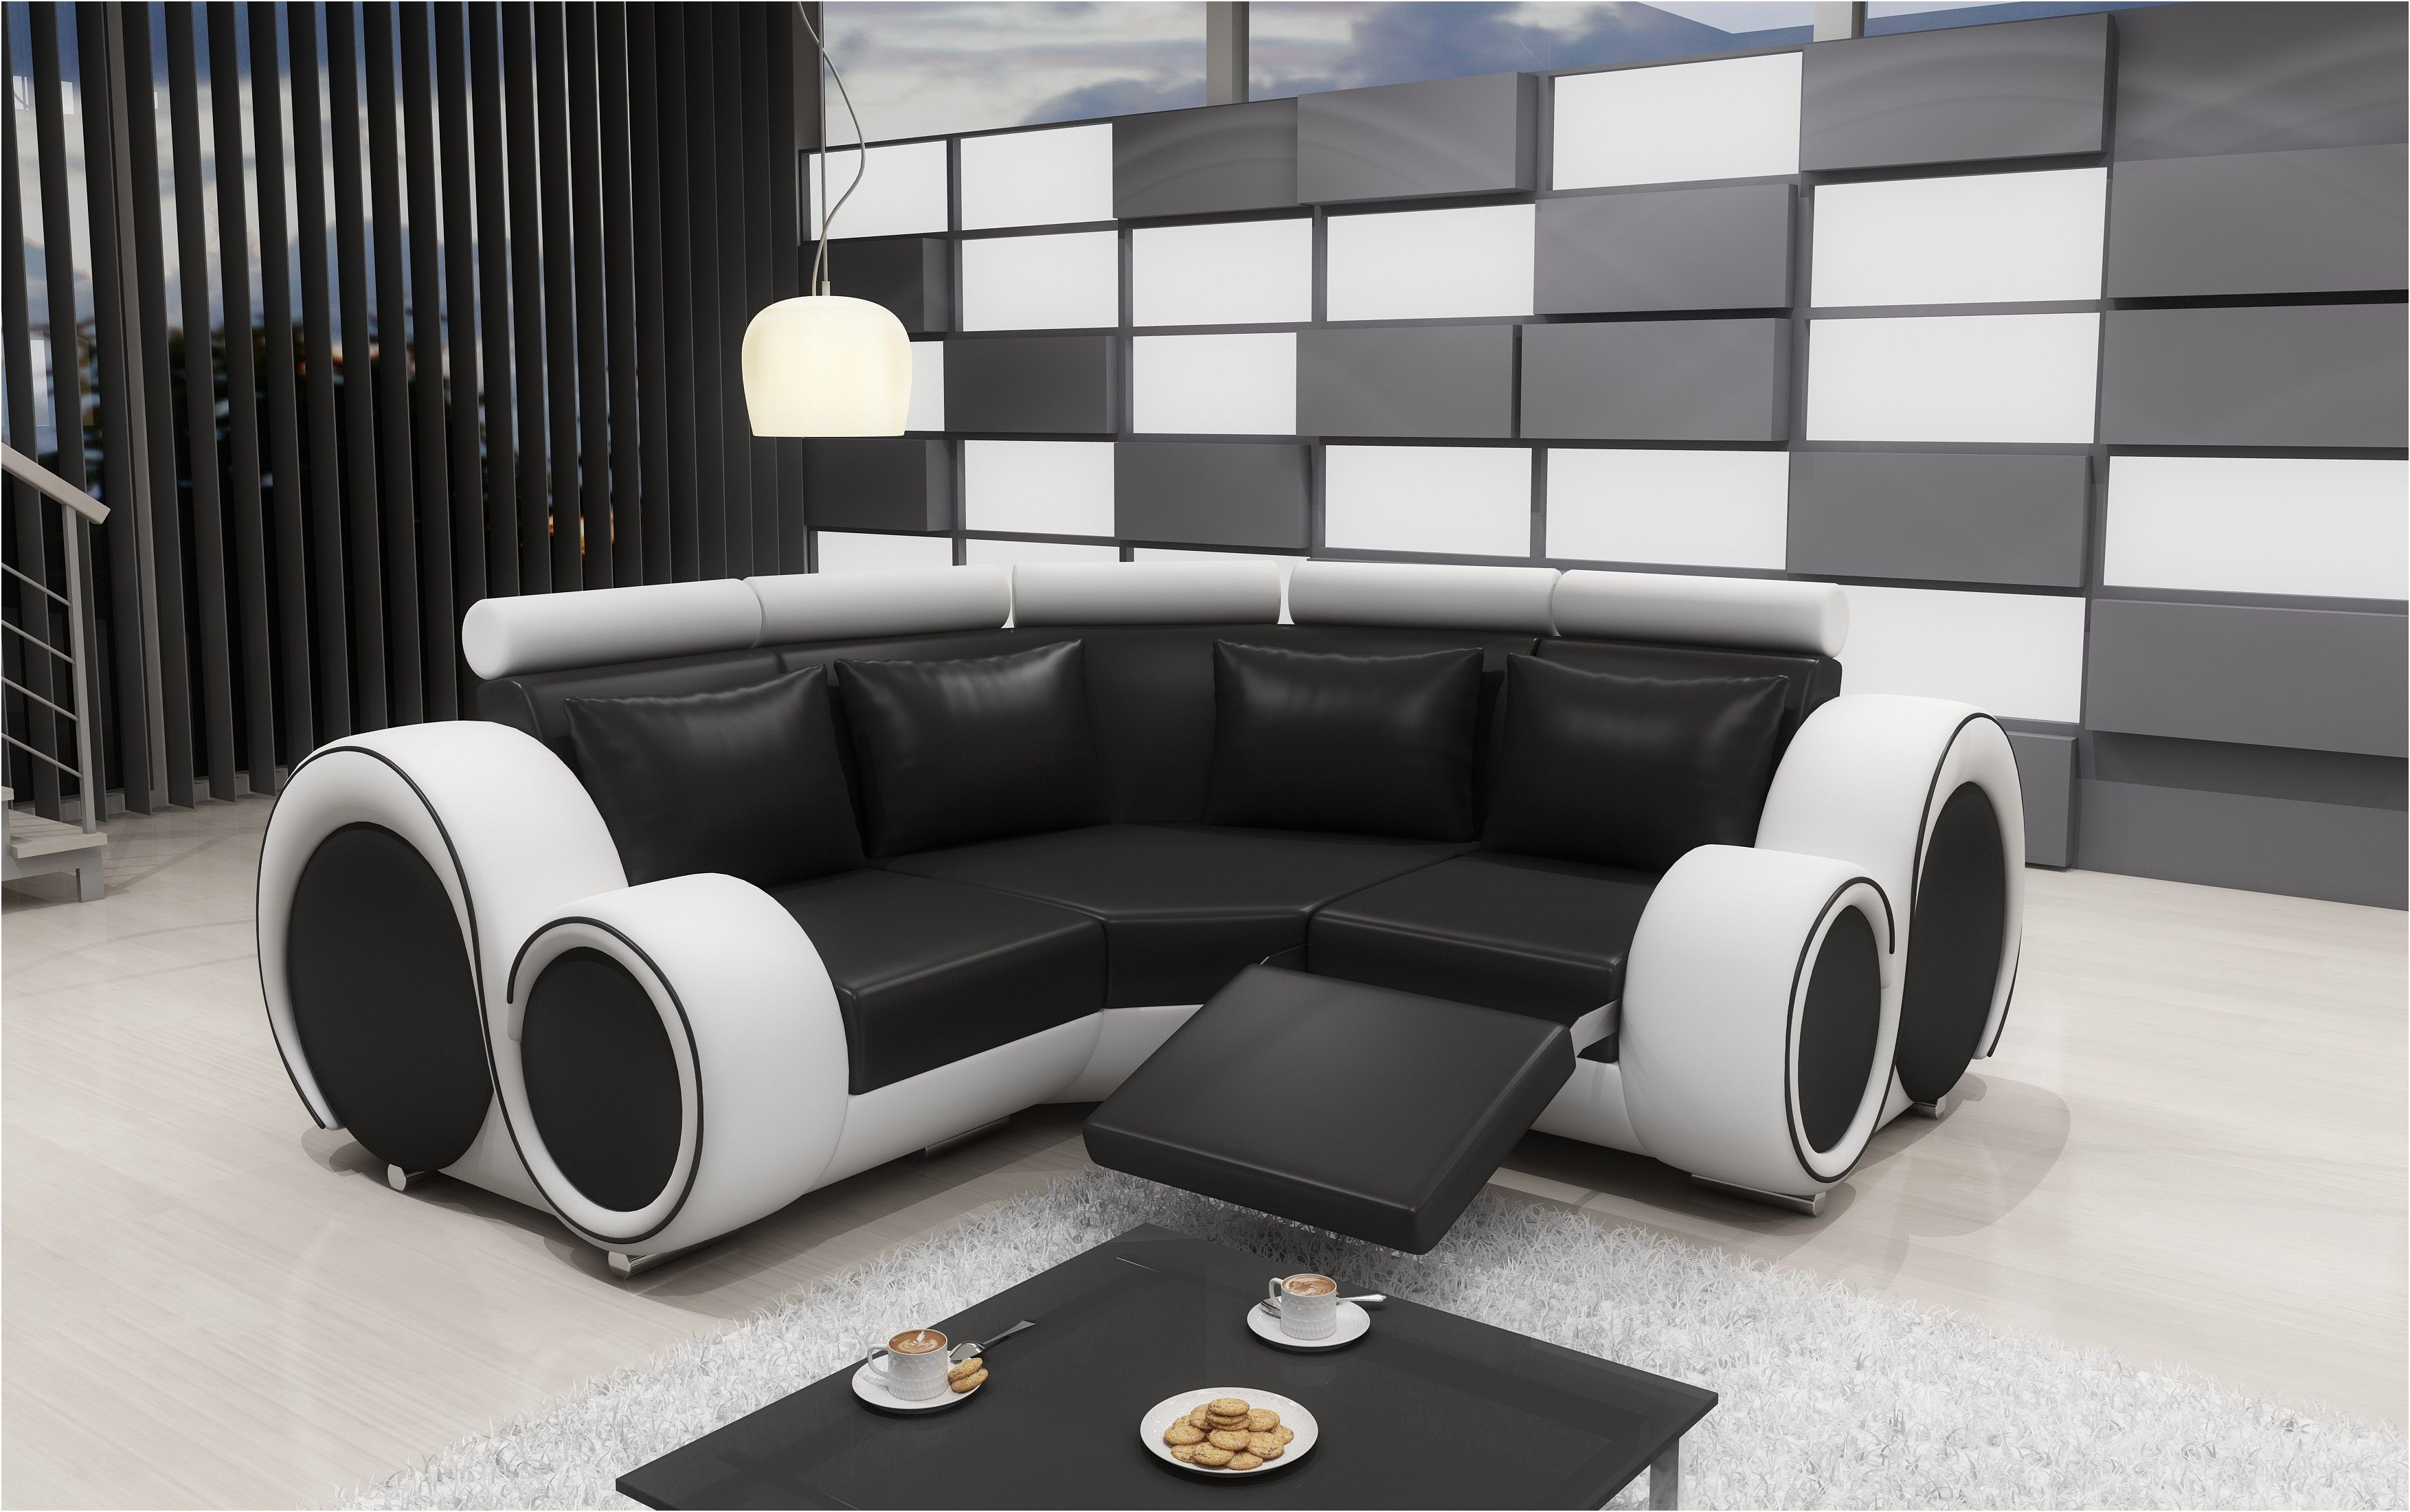 Teuer Couch Schwarz Weiss Sofa Couch Couch Sofa Design